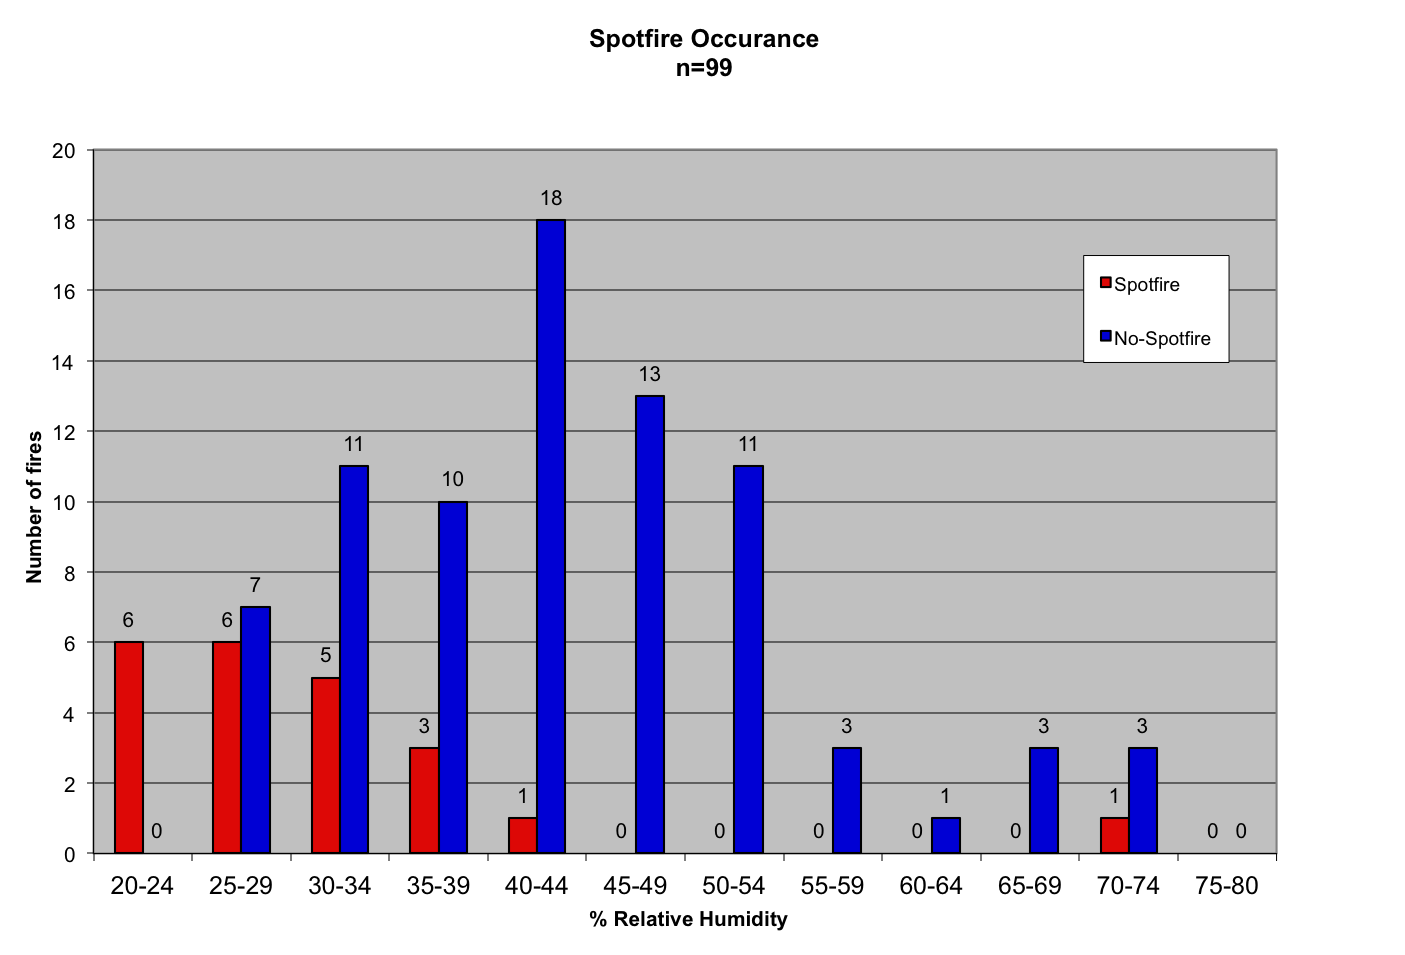 Bar graph with data for the number of fires and the % relative humidity